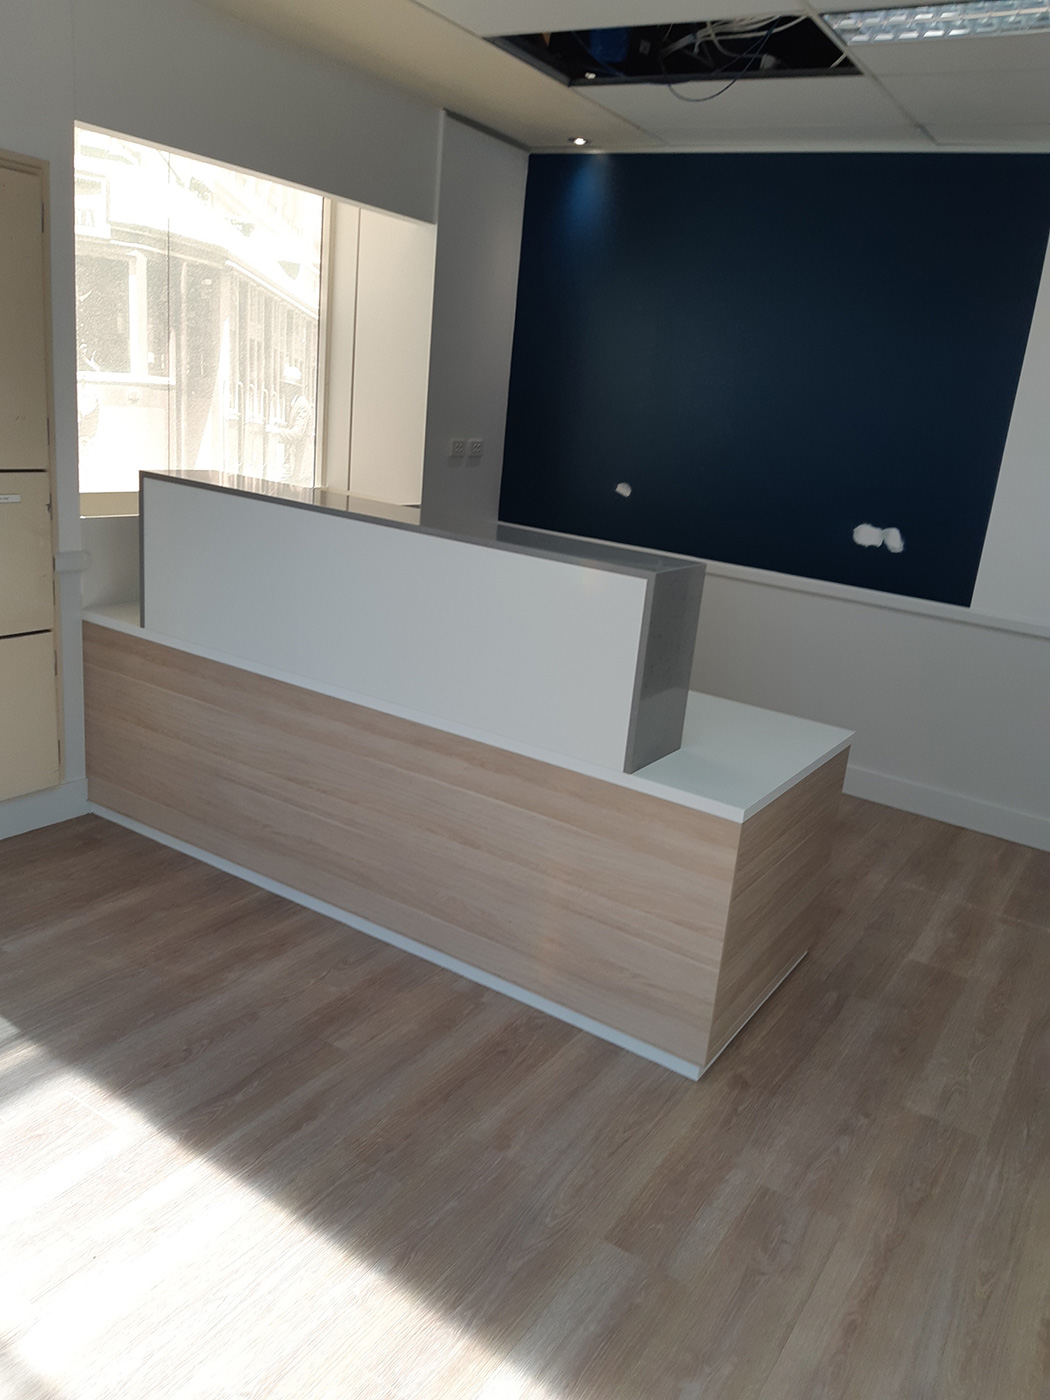 Commercial-Office-Joinery-image-2